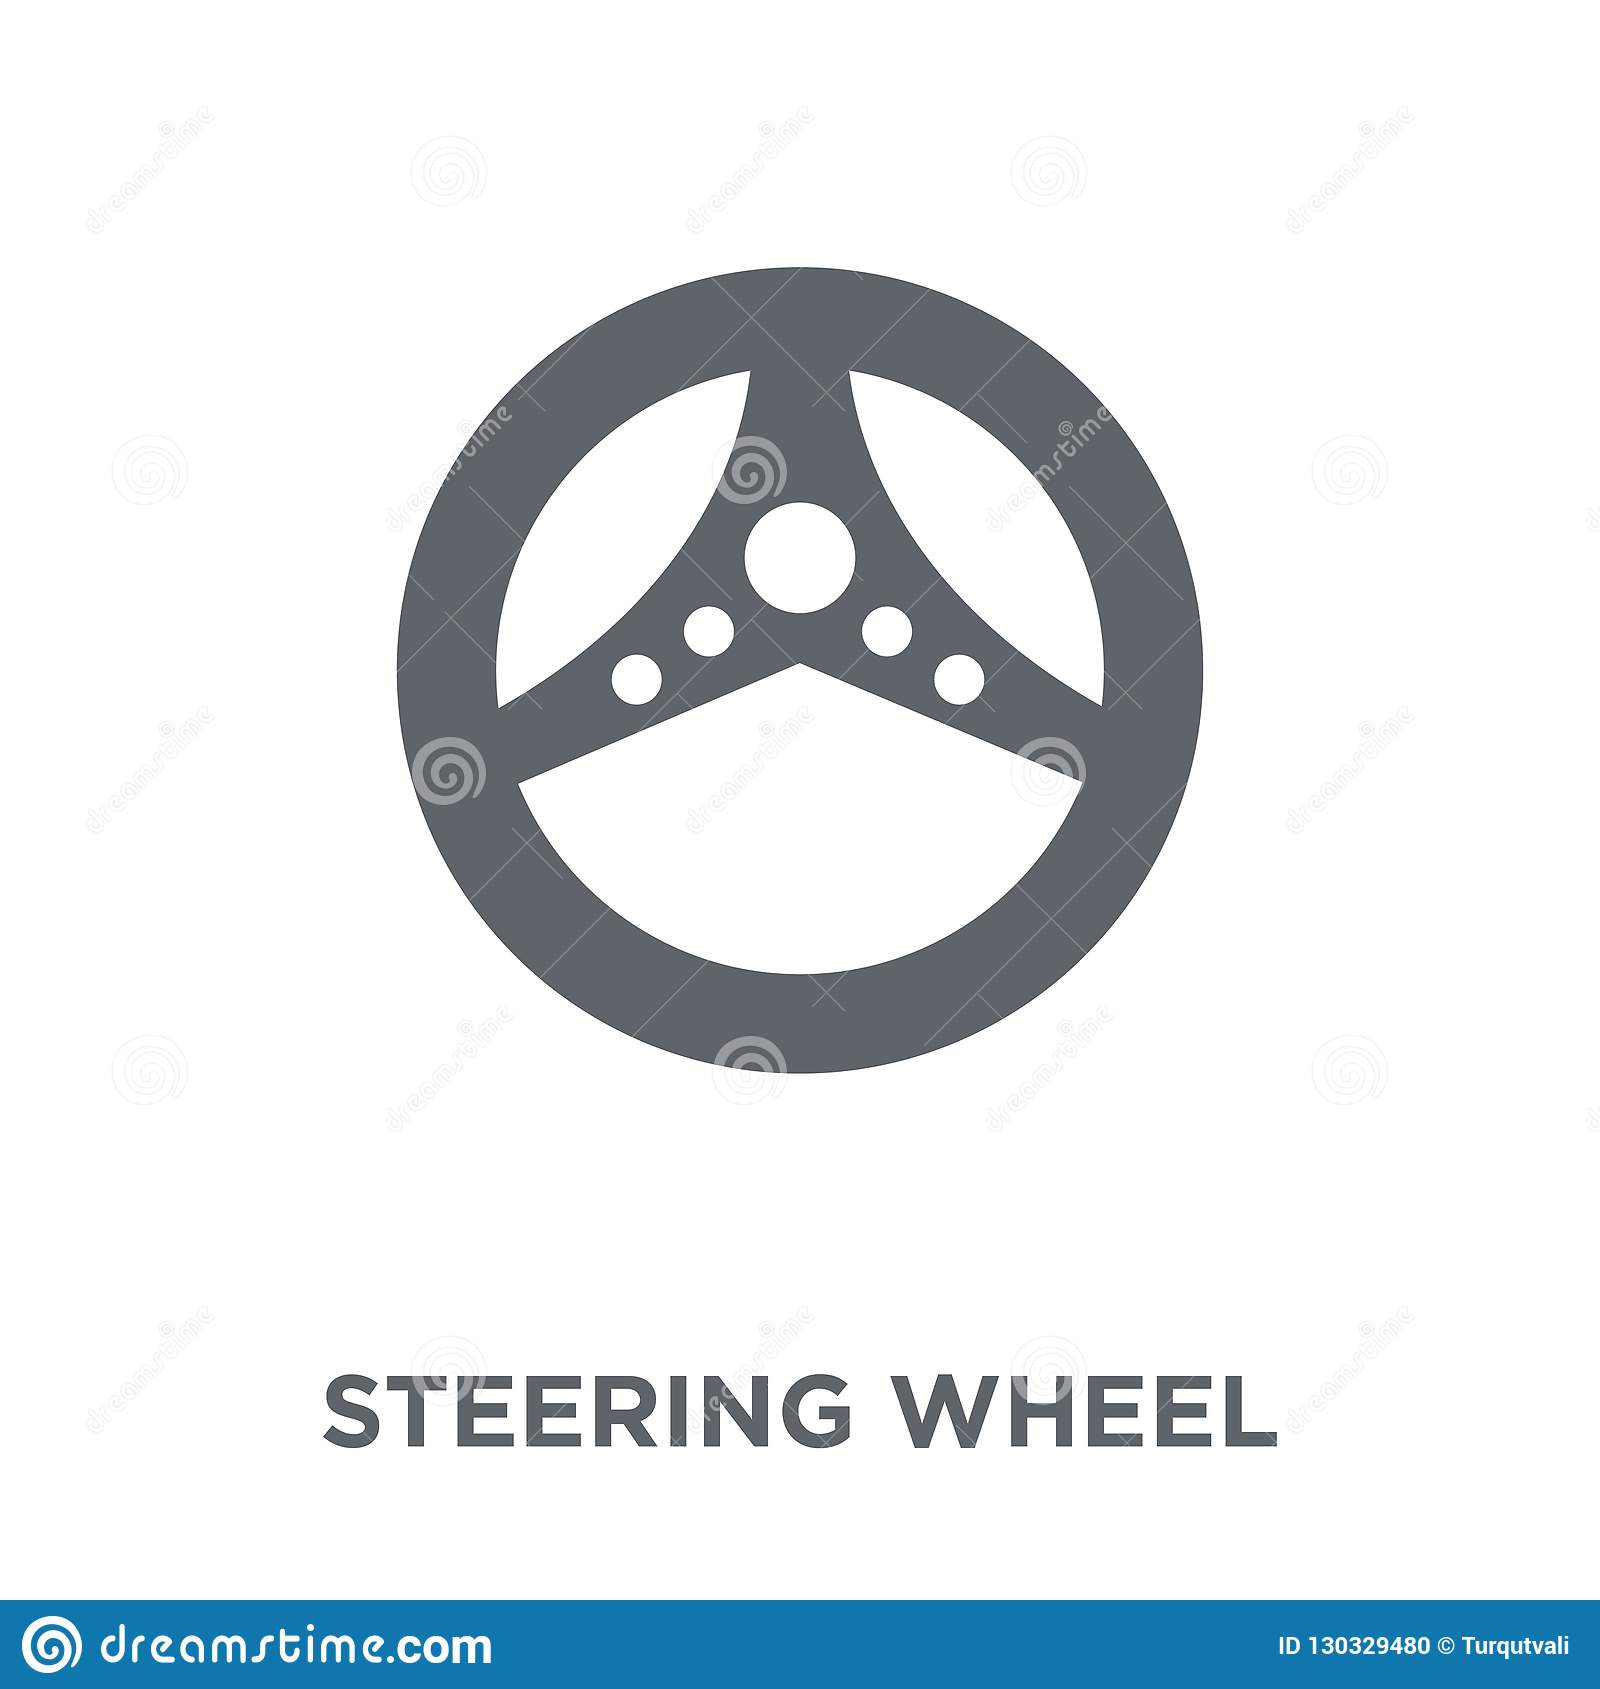 Steering wheel icon from Entertainment collection.